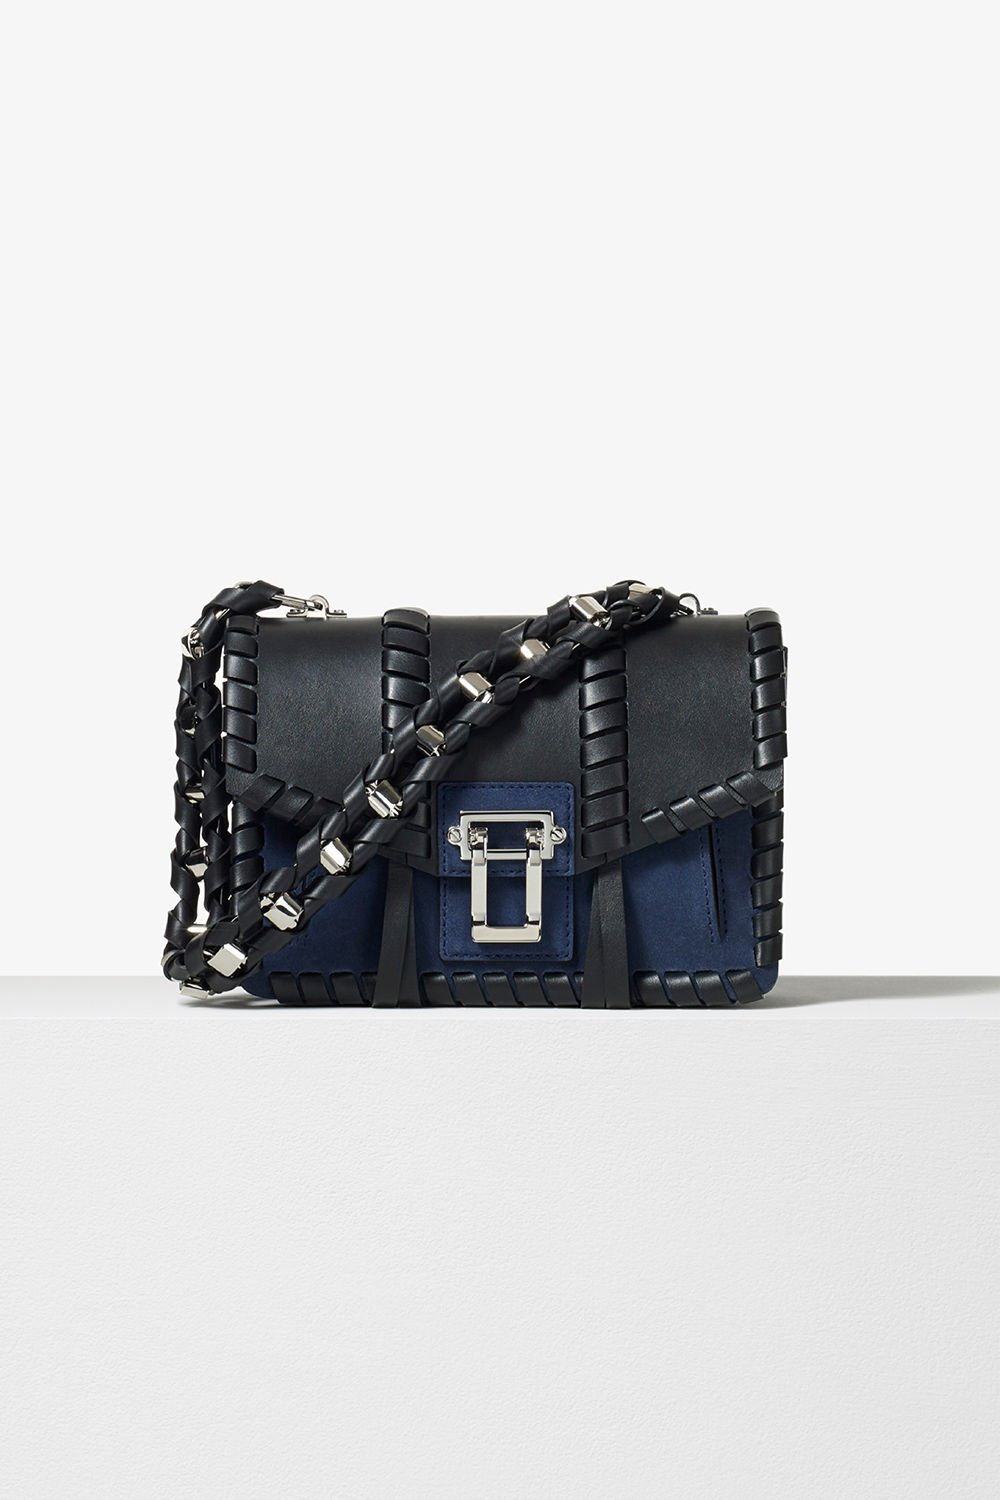 proenza schouler pre fall 2017 black indigo smooth leather and suede whipstitch chain hava bag